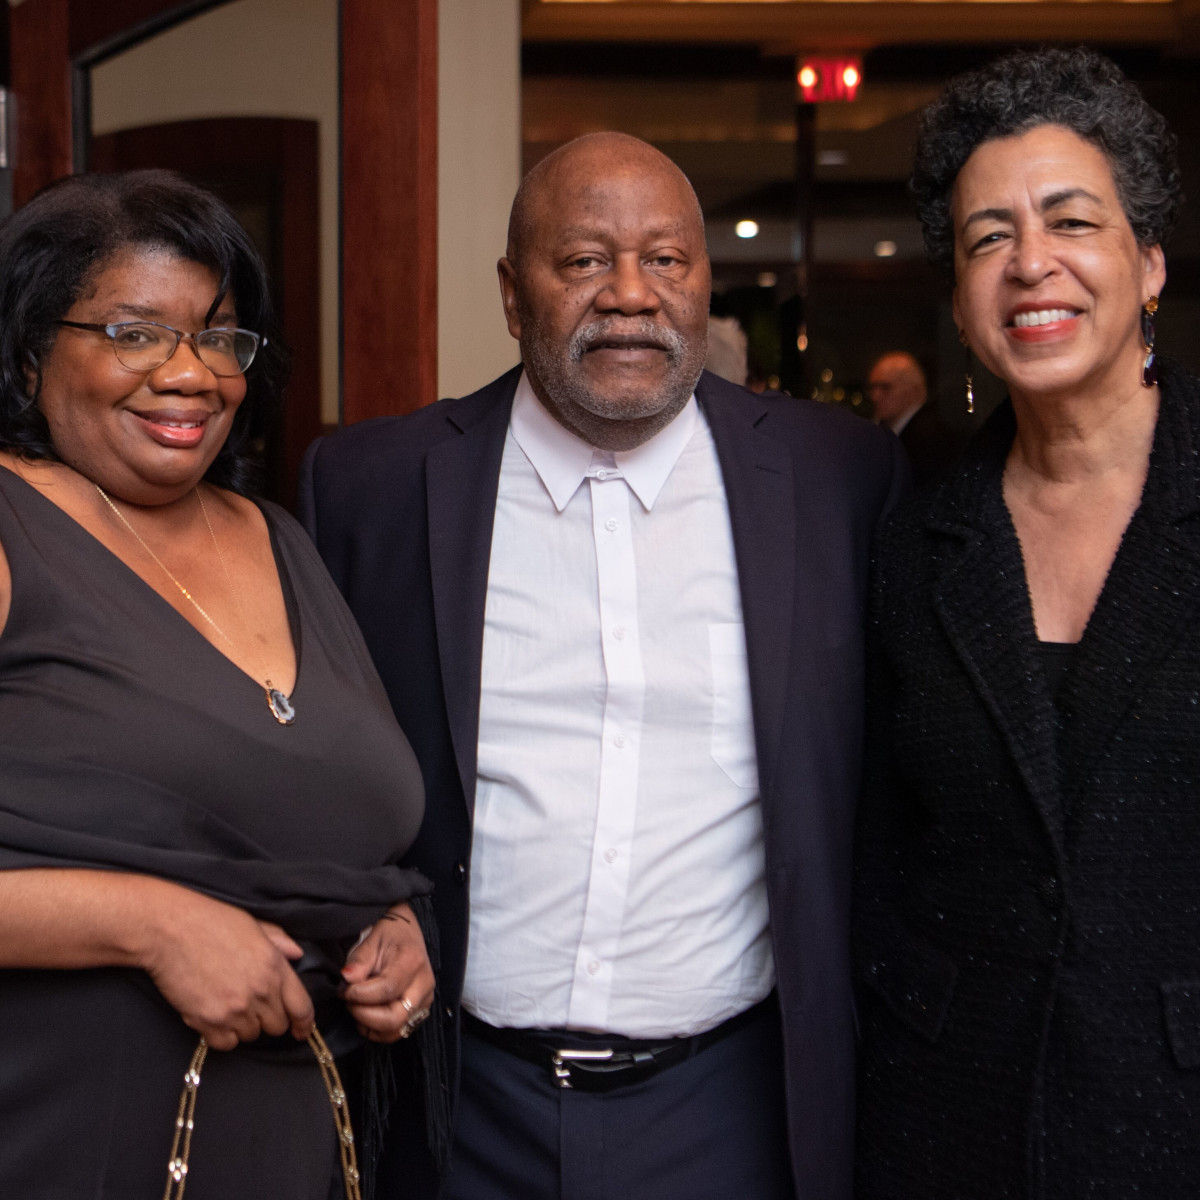 Inprint Poets & Writers Gala 2020: Inprint Treasurer Robbi Jones, Robert Ford, Docia Rudley